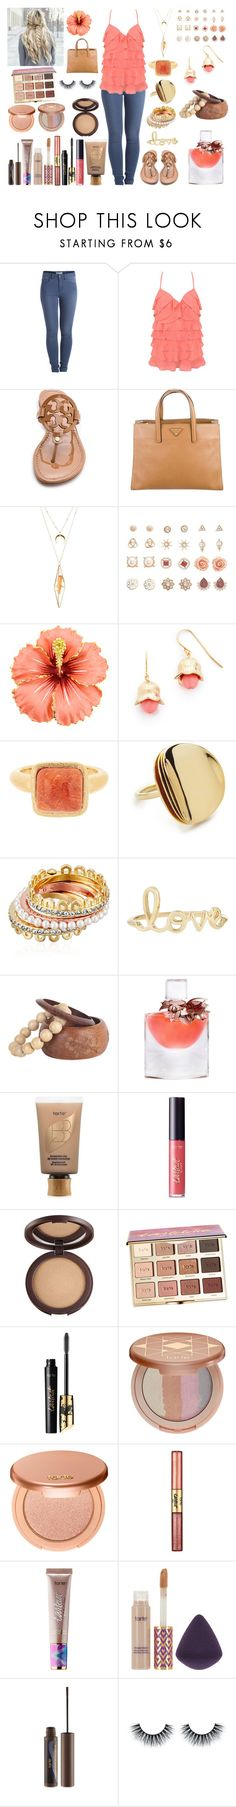 """Untitled #822"" by asiebenthaler ❤ liked on Polyvore featuring Pieces, Forever 21, Tory Burch, Prada, Charlotte Russe, Aurélie Bidermann, Rivka Friedman, Elizabeth and James, Kate Spade and Sydney Evan"